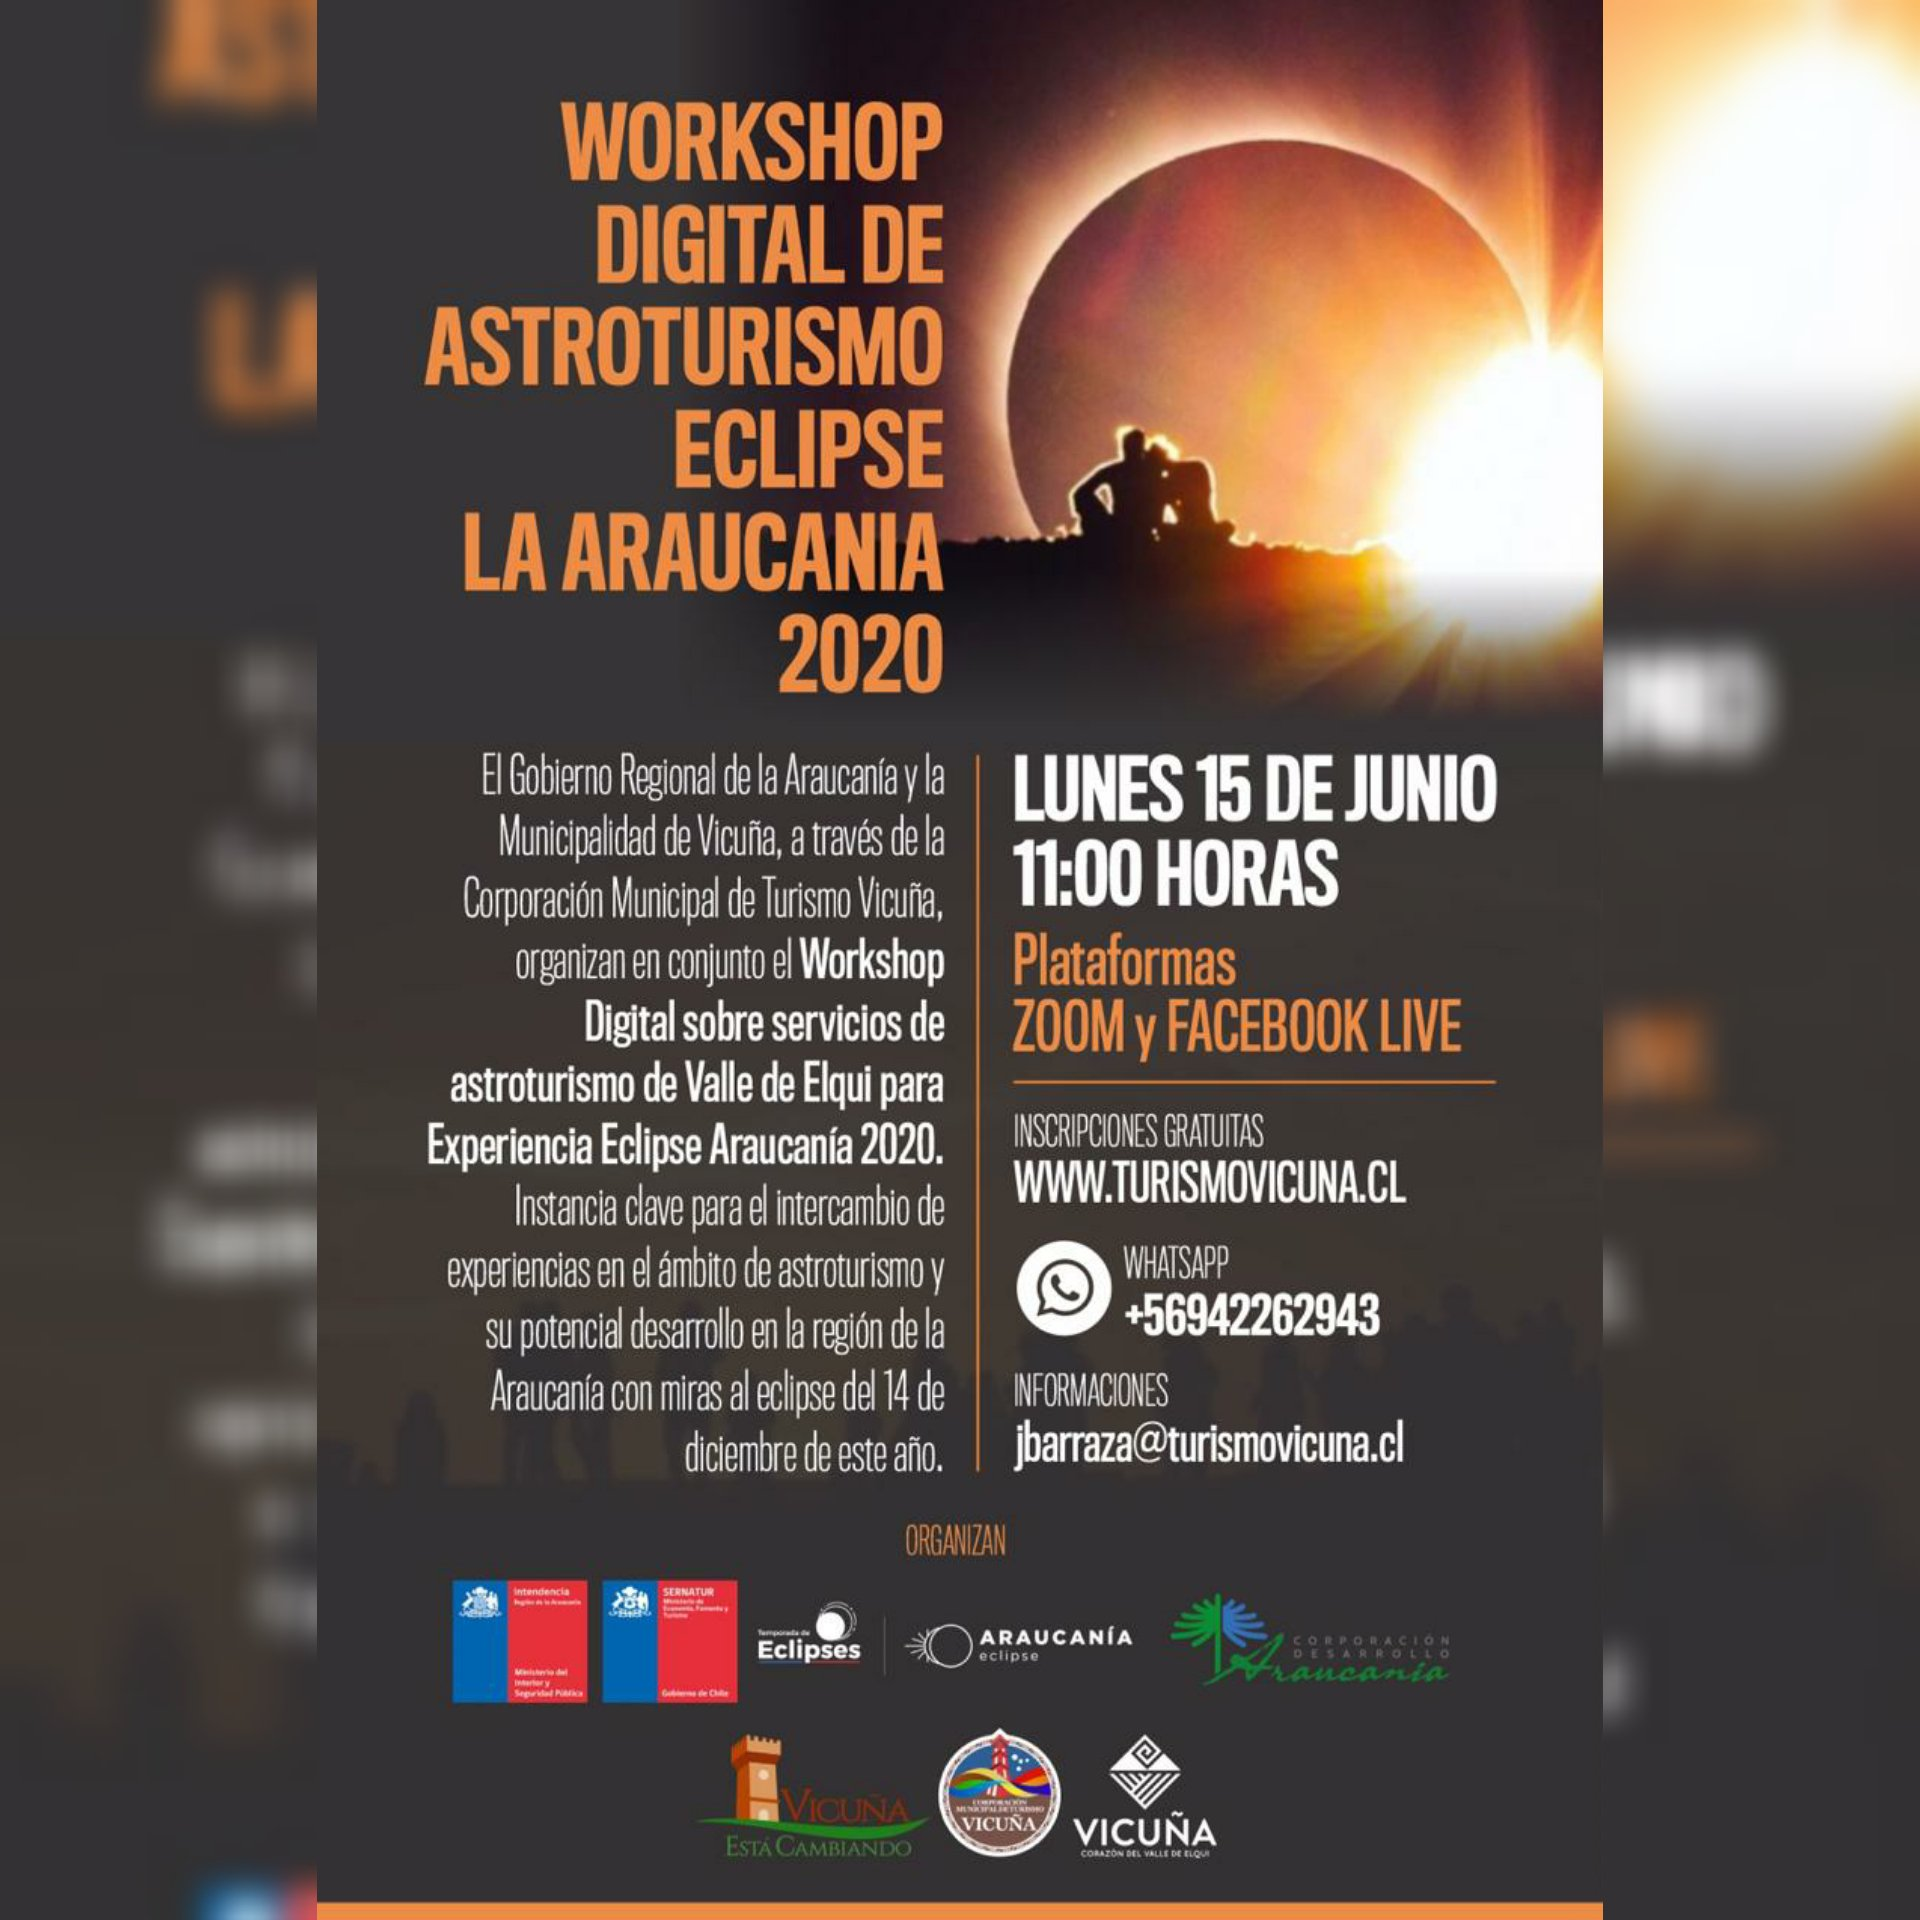 15 de junio: Workshop digital de astroturismo Eclipse #Araucanía 2020